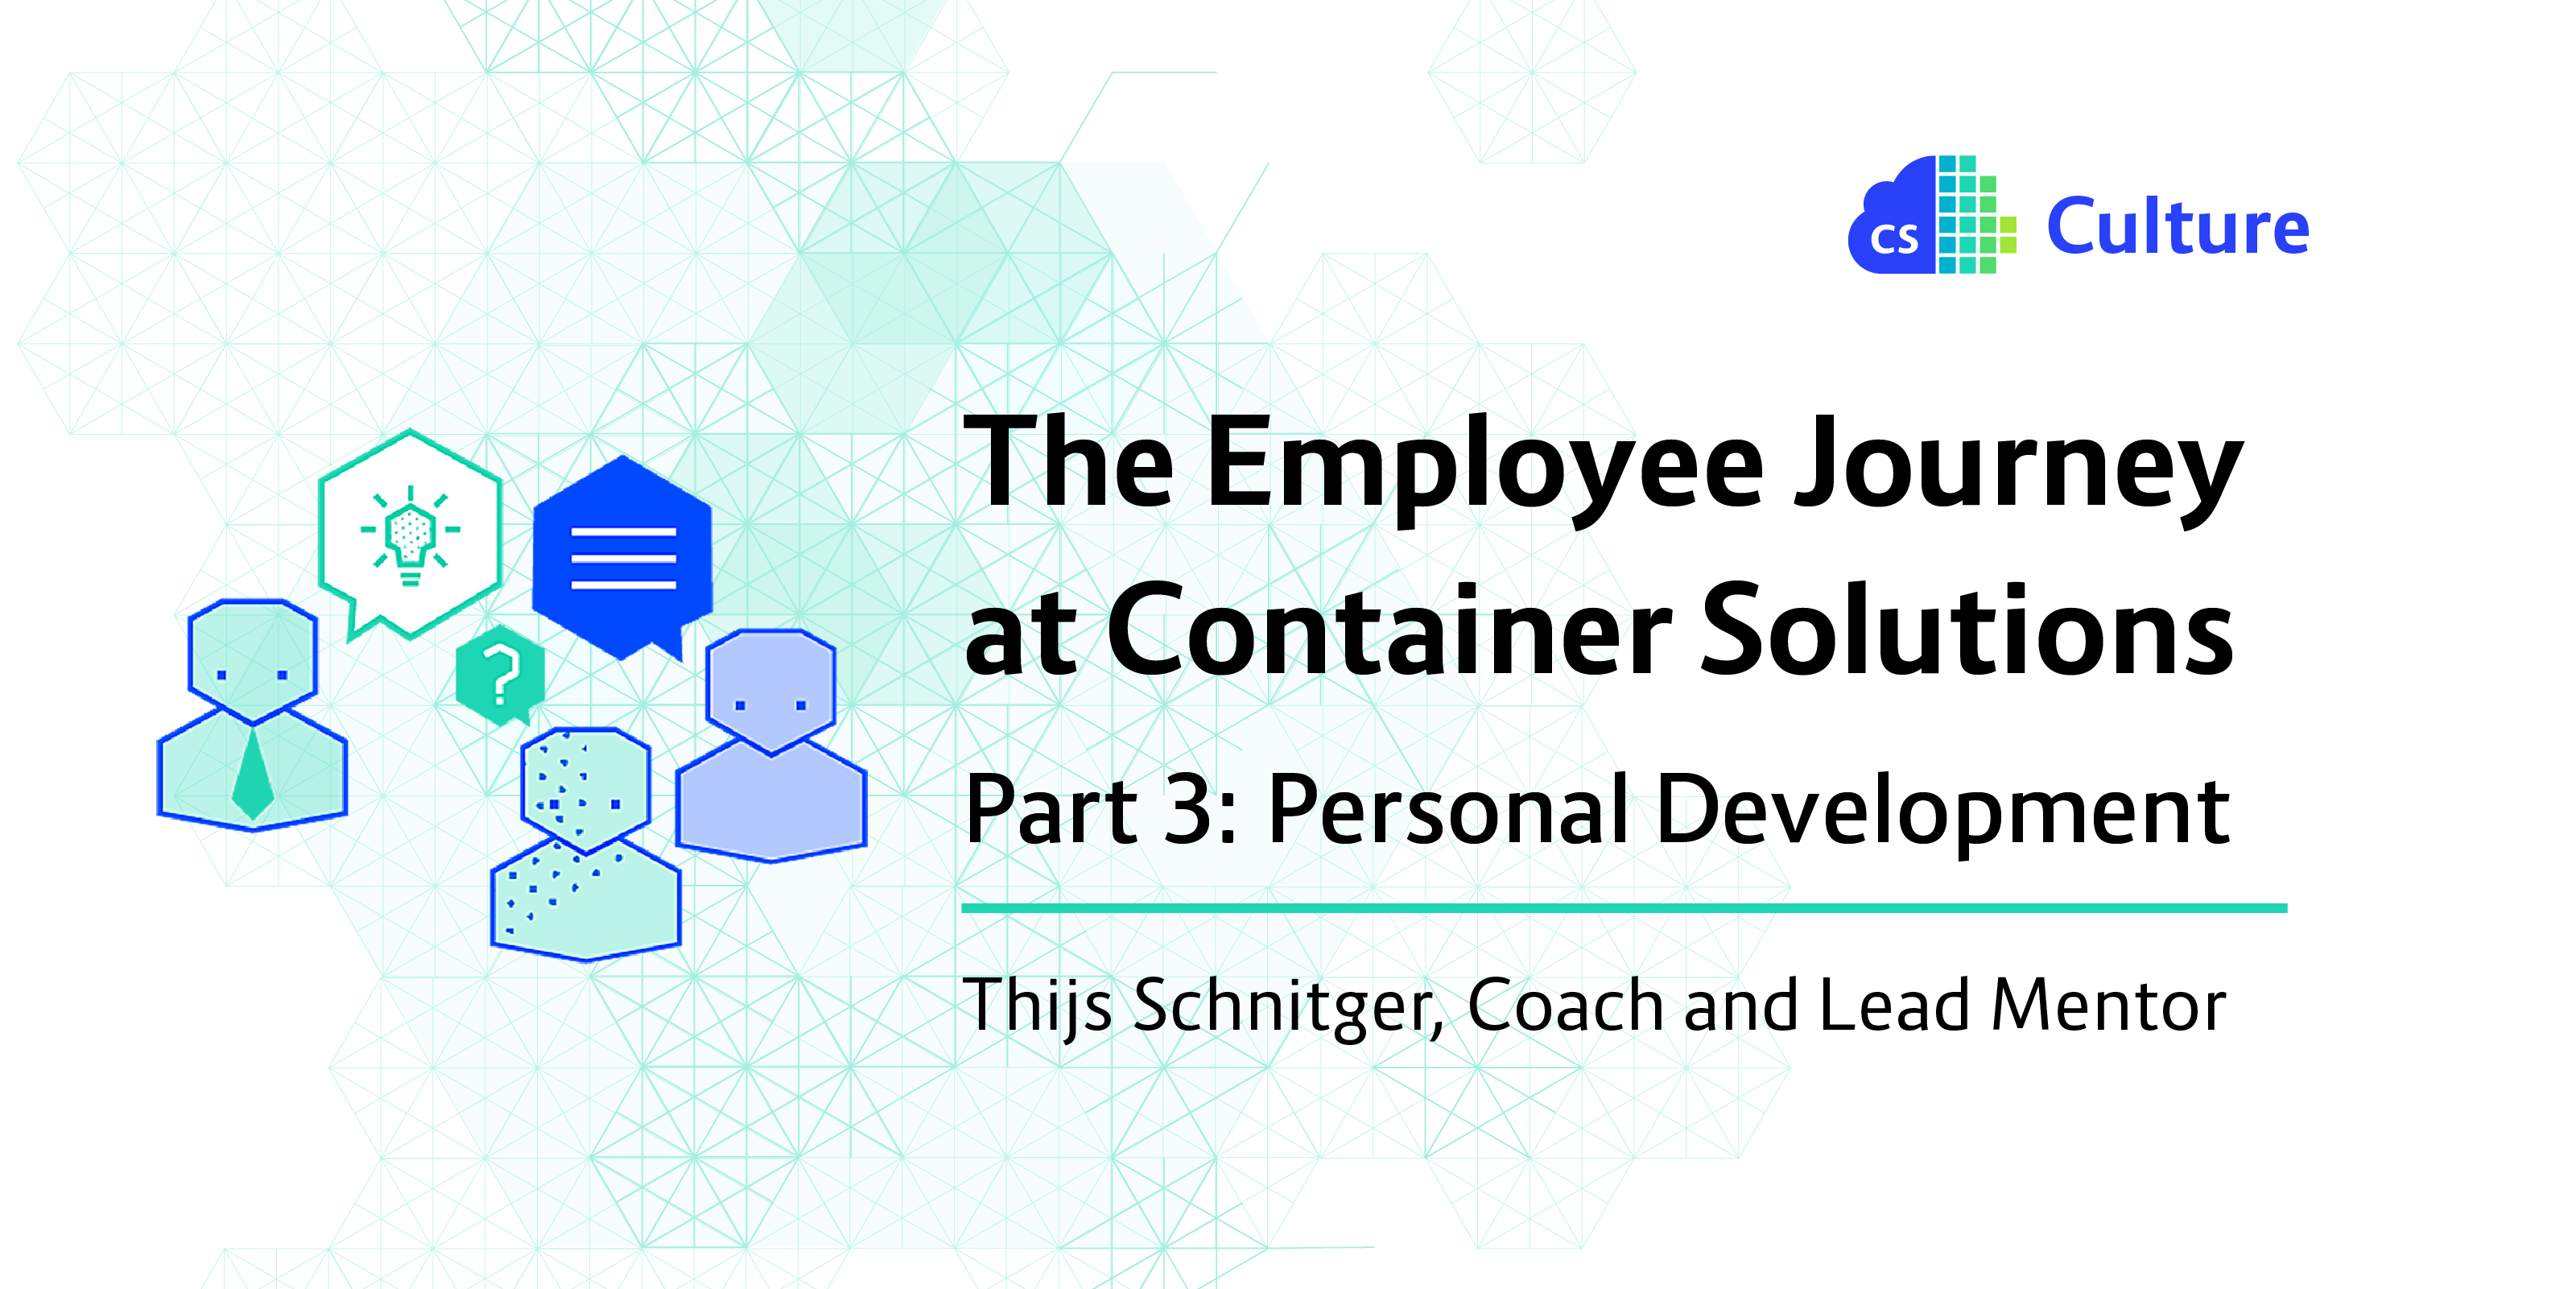 The employee journey at Container Solutions, part 3, Personal Development